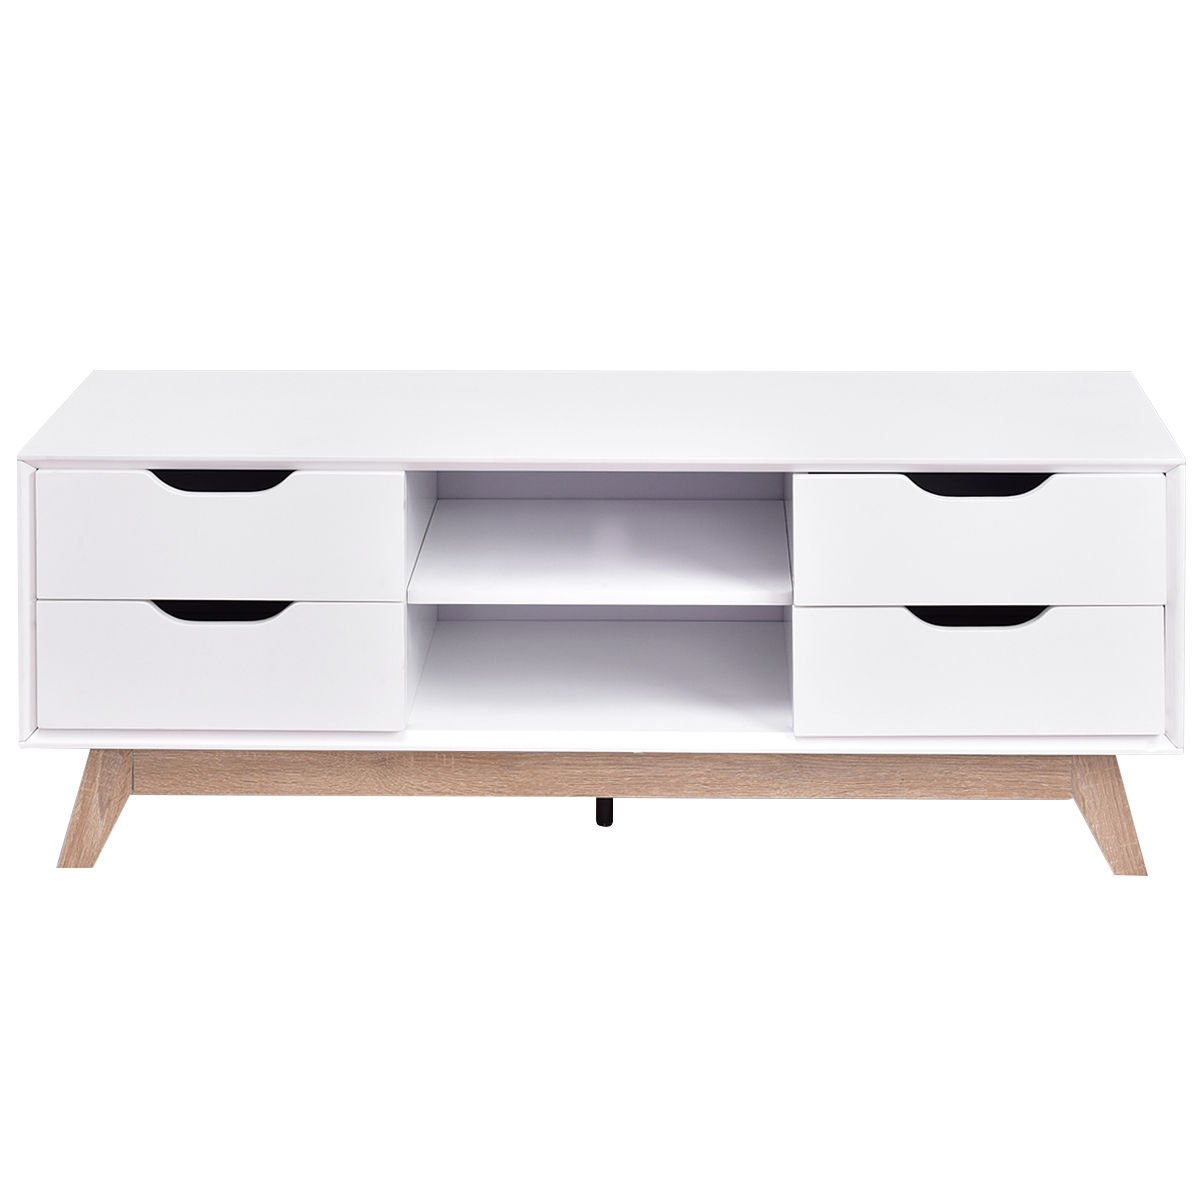 TV Stand Entertainment Center Console Storage Cabinet Drawer and Shelves w/ Legs